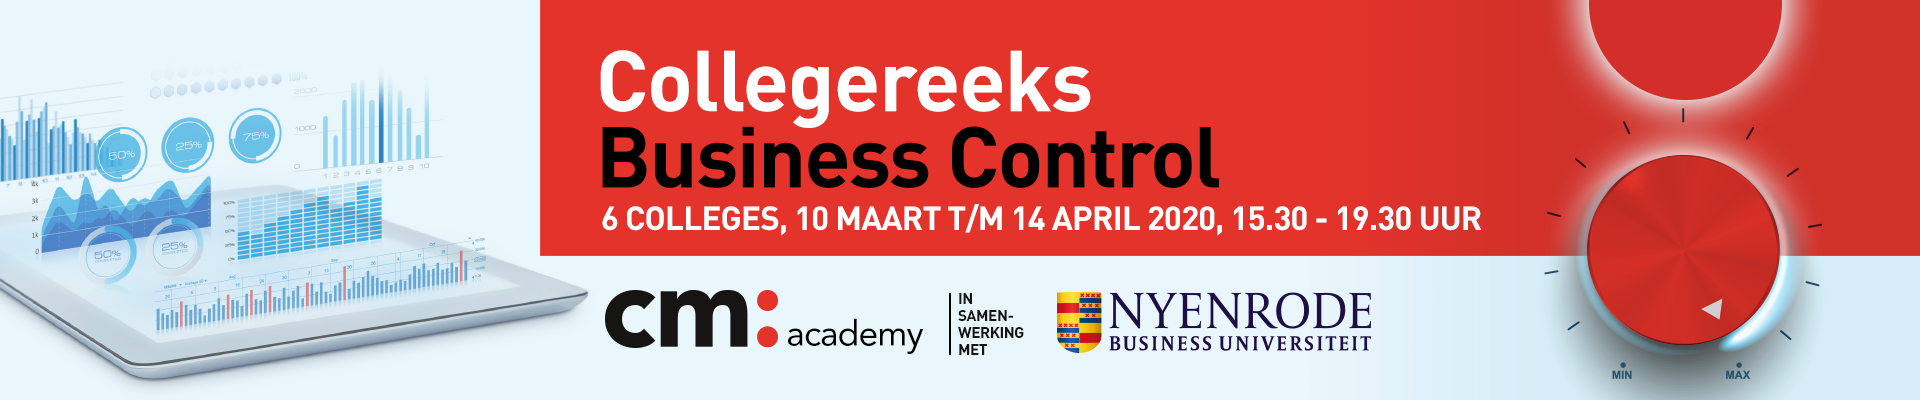 Collegereeks Business Control voorjaar 2020